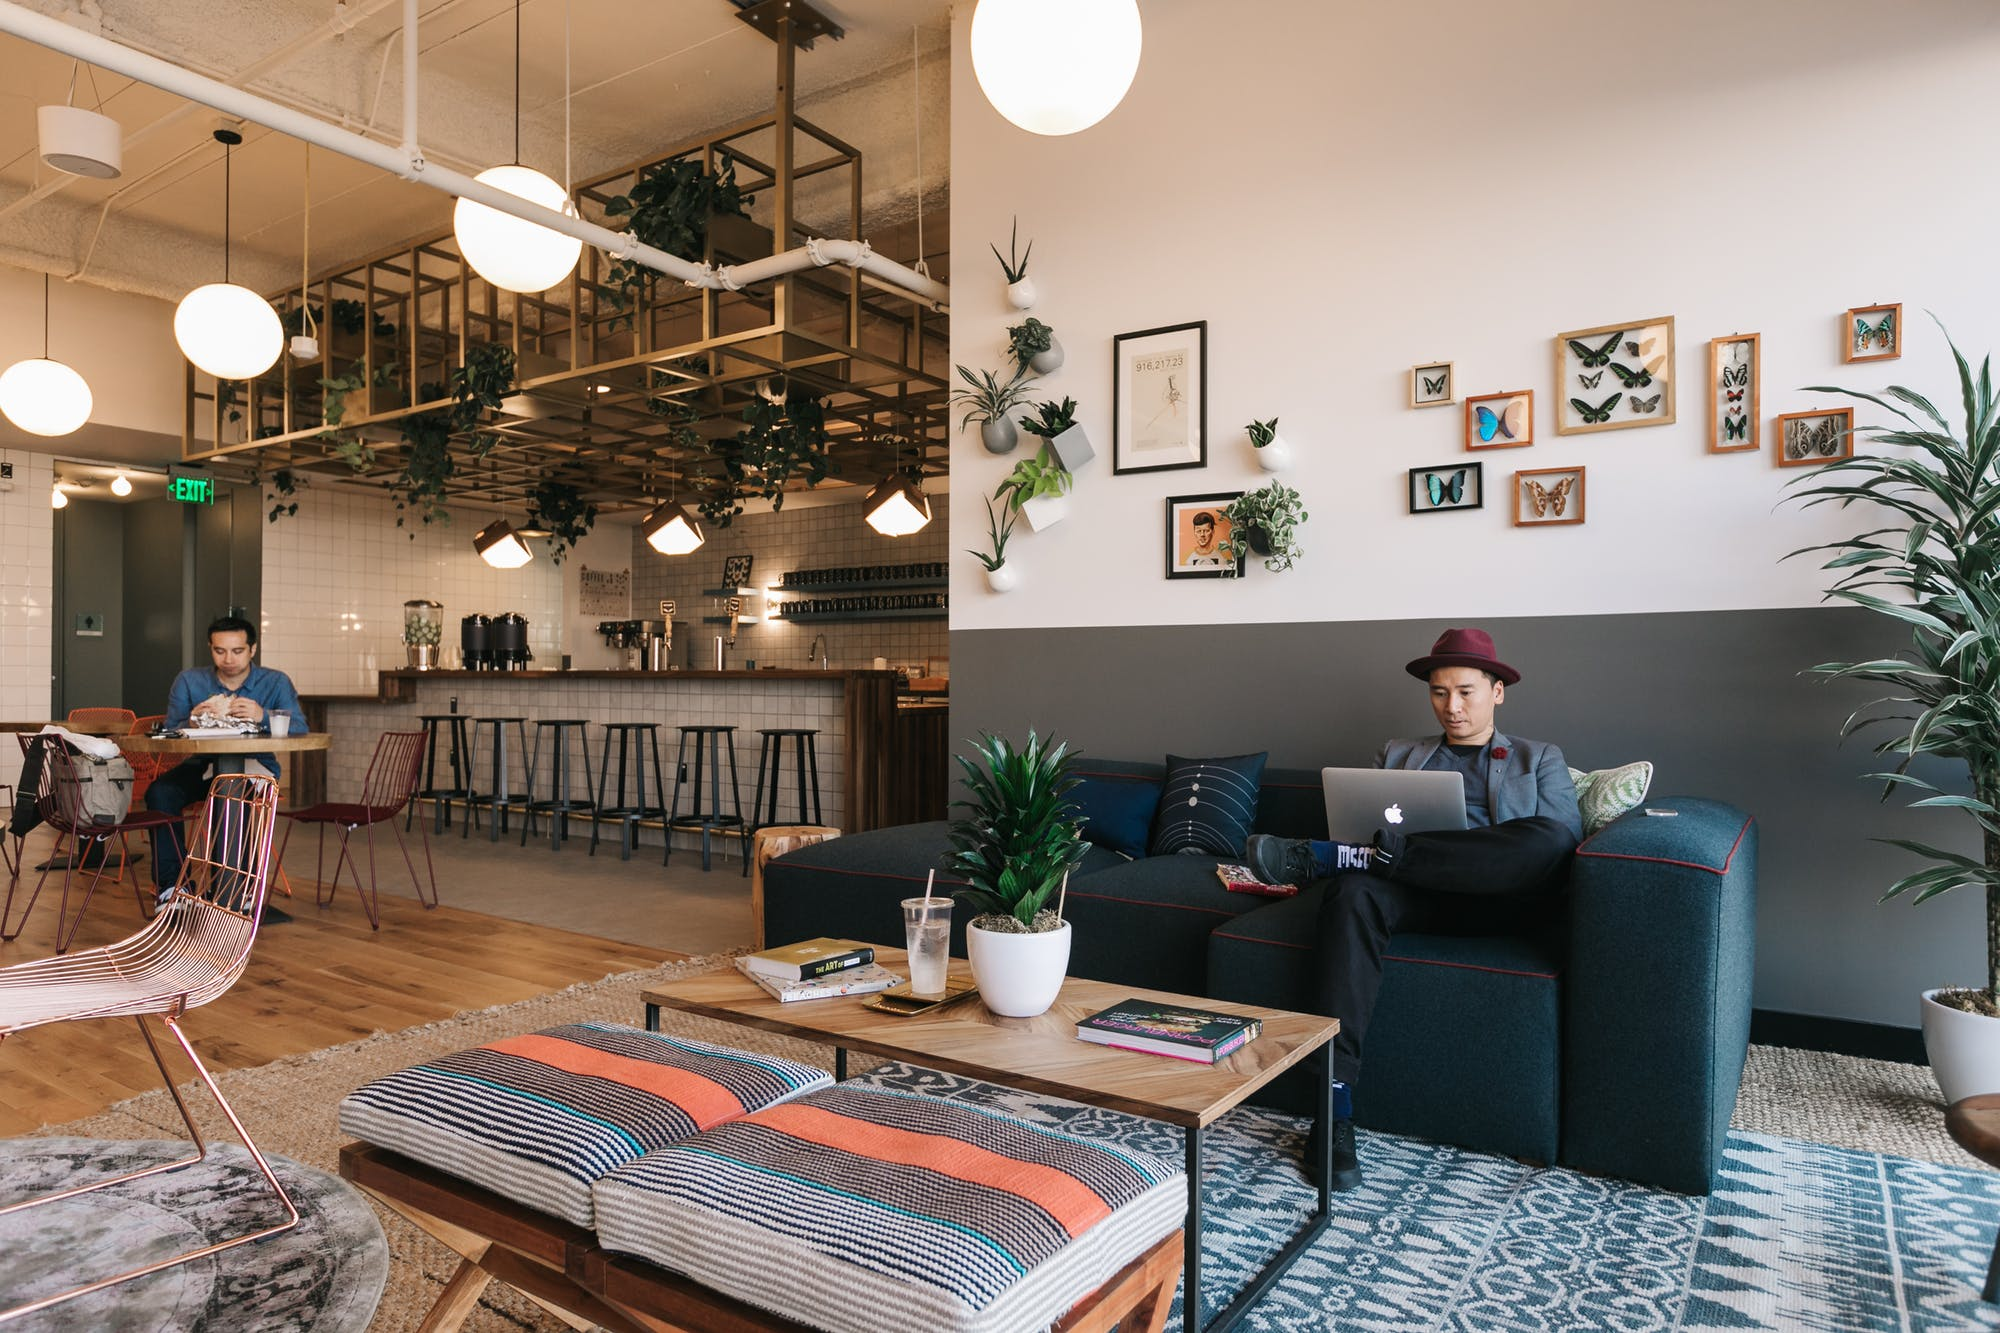 wework - Ing. Enrique Butty 275 - Buenos Aires